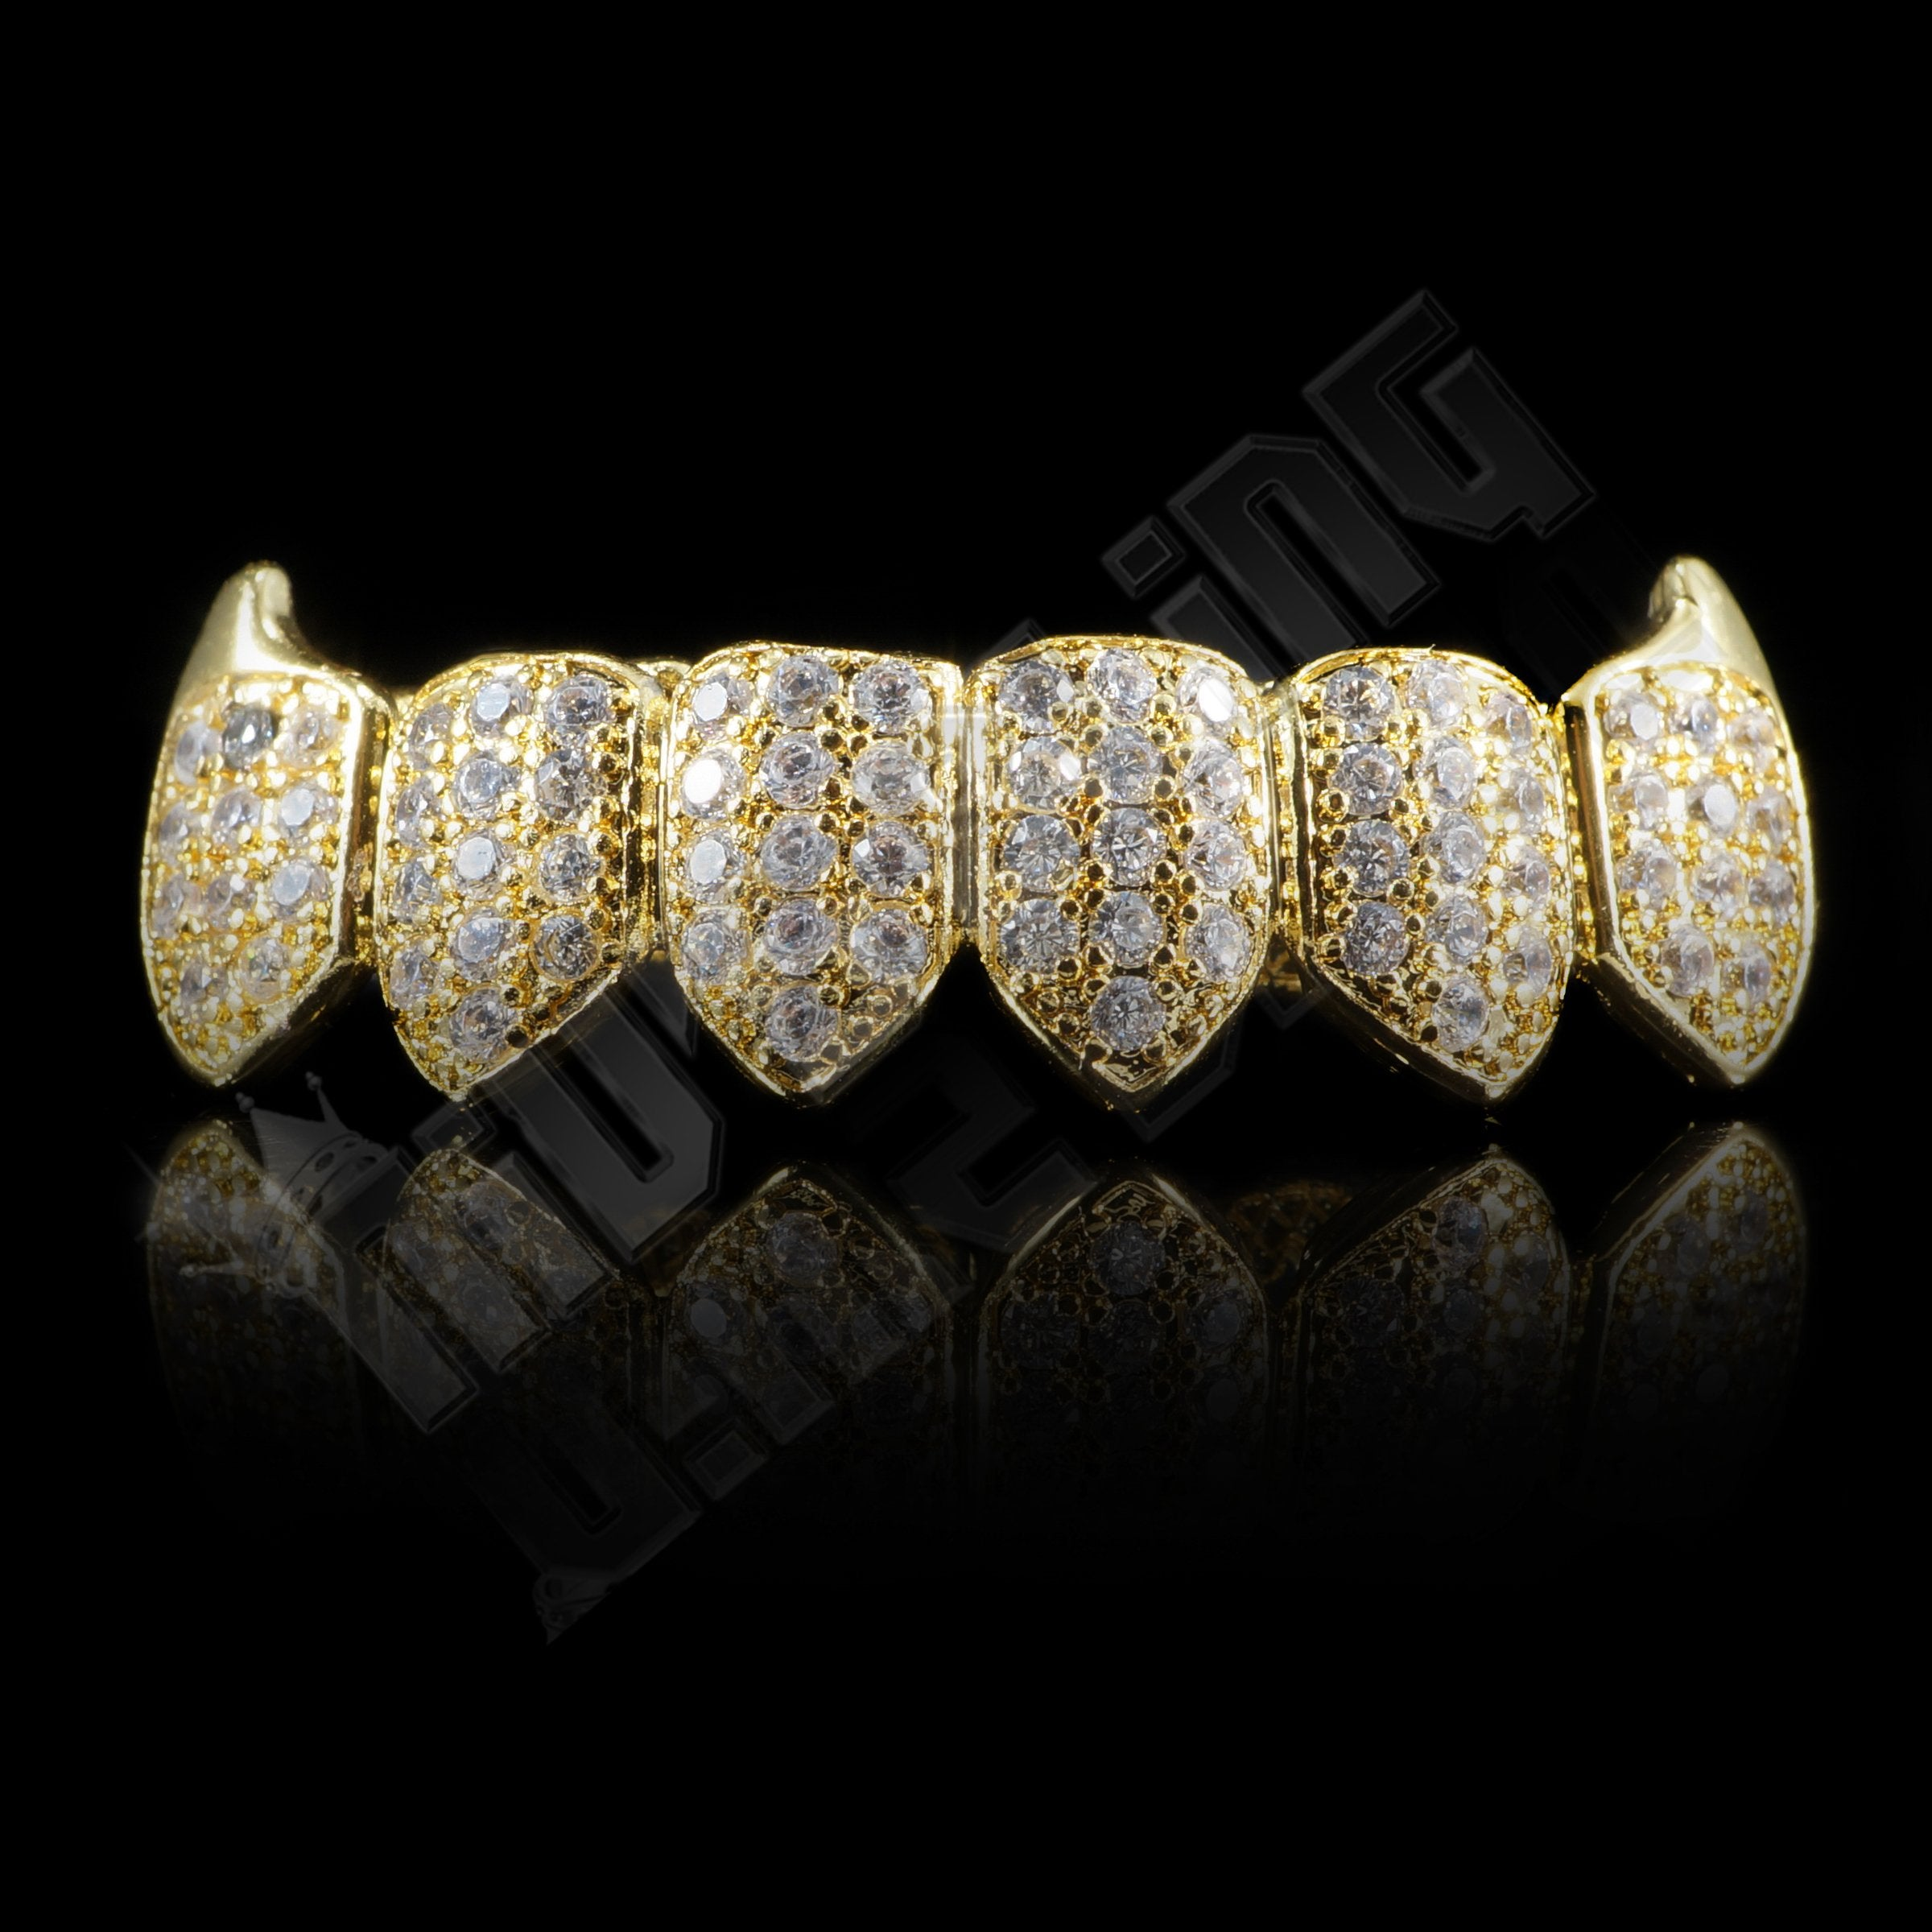 Affordable 18K Gold Plated Fang CZ Cluster Top Bottom Hip Hop Grillz - Bottom Grill